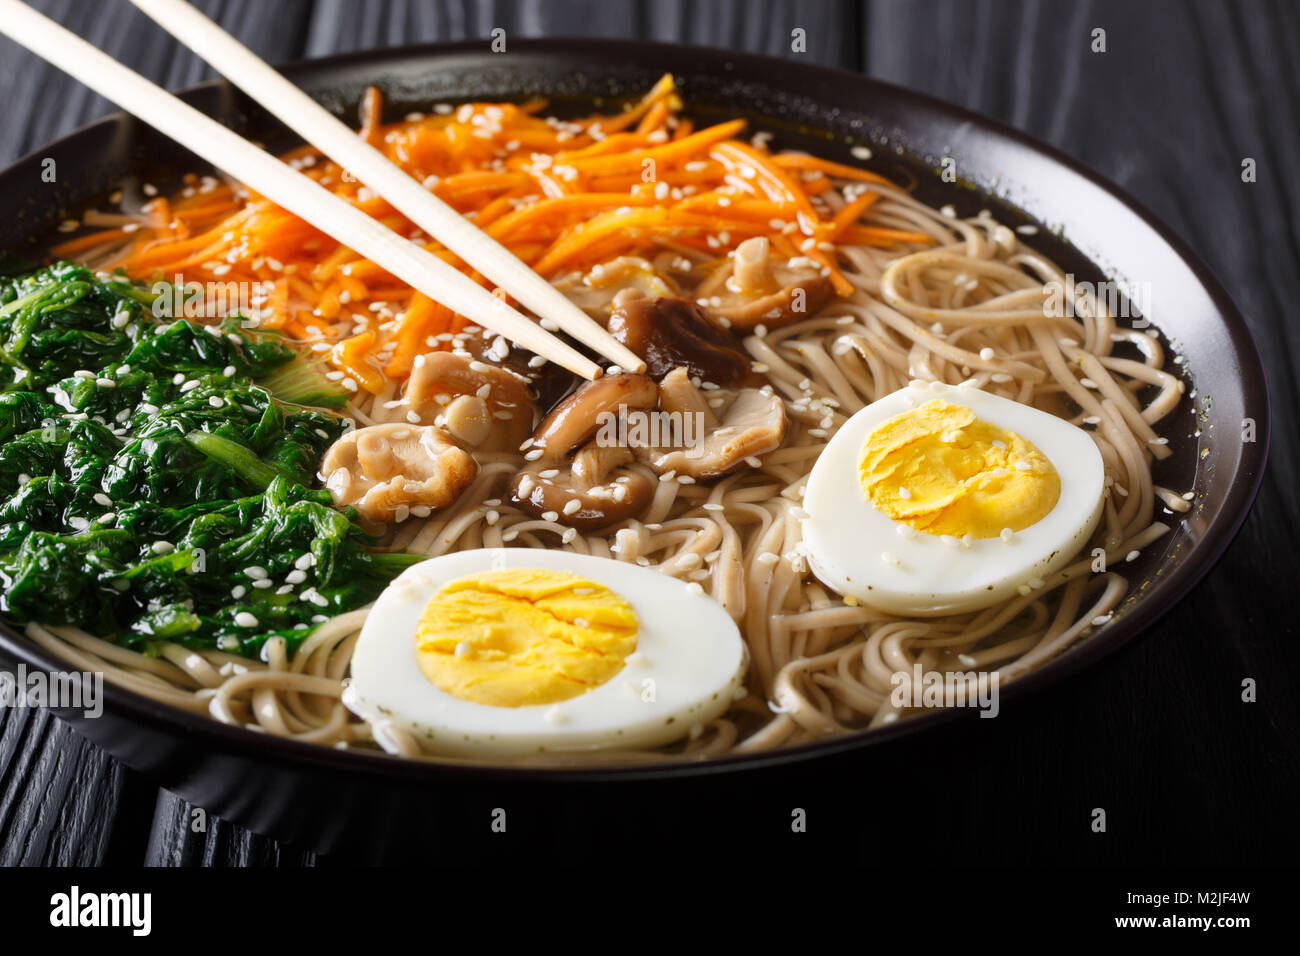 Soba noodles soup with vegetables, shiitake mushrooms, egg and sesame close-up in a bowl. Horizontal Stock Photo